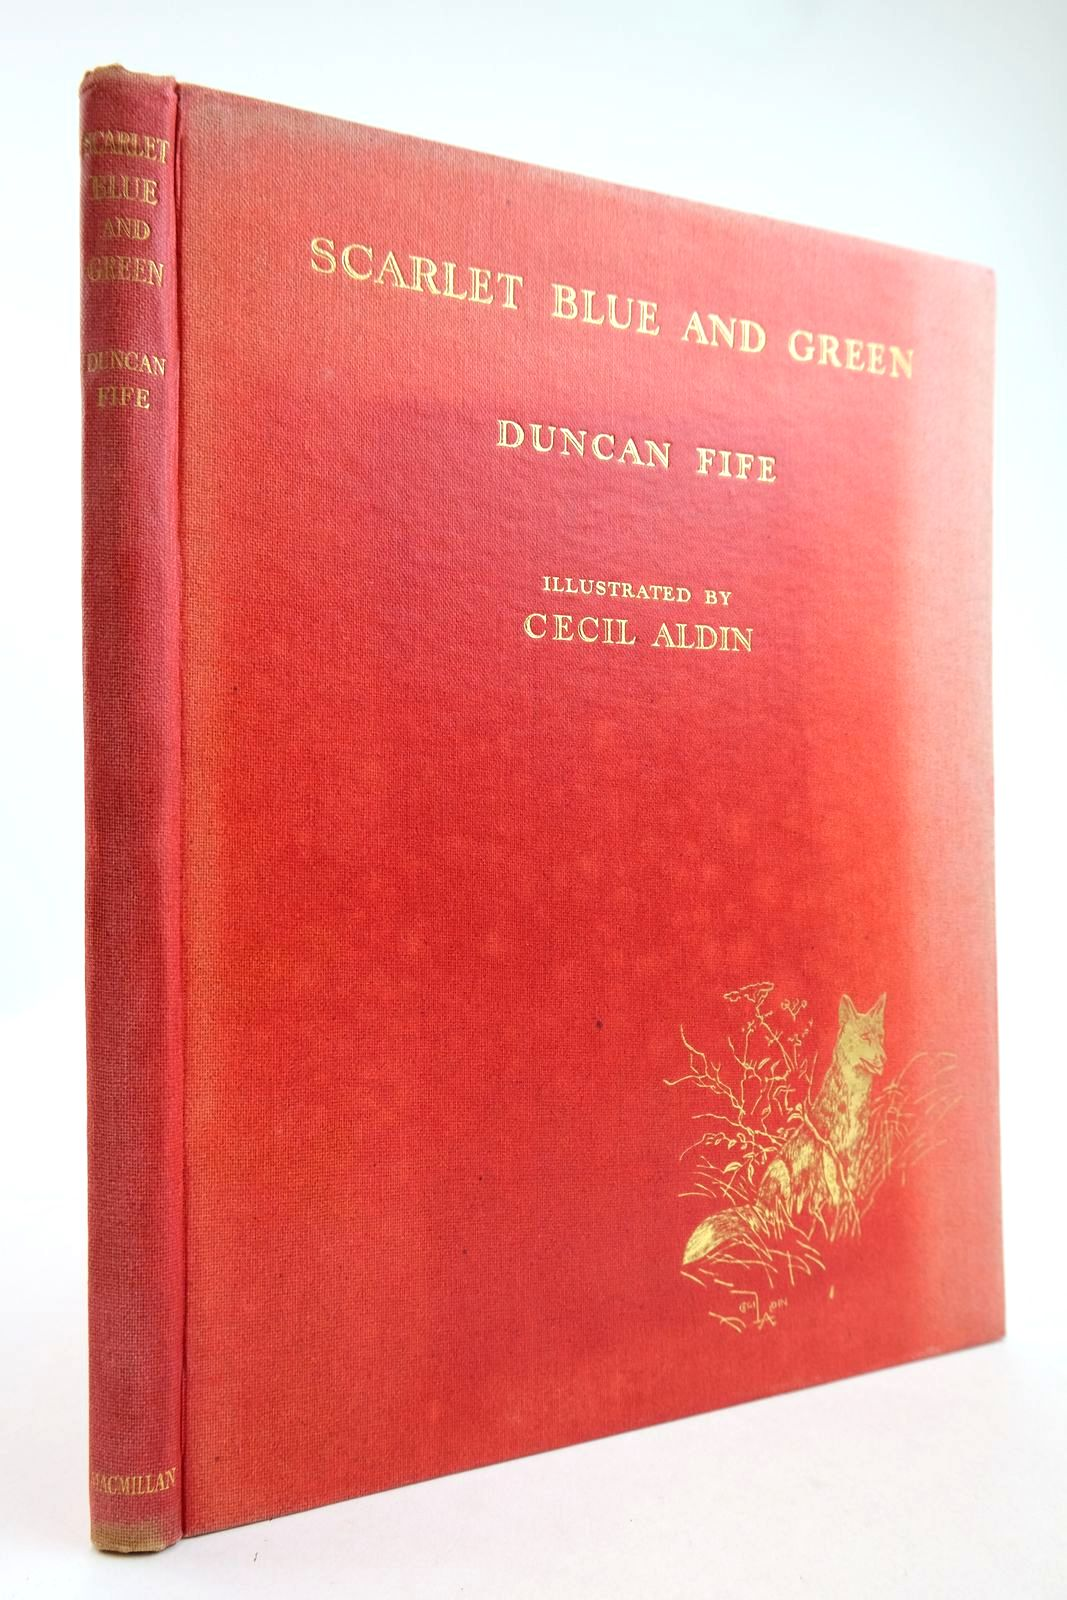 Photo of SCARLET BLUE AND GREEN written by Fife, Duncan illustrated by Aldin, Cecil published by Macmillan & Co. Ltd. (STOCK CODE: 2133289)  for sale by Stella & Rose's Books